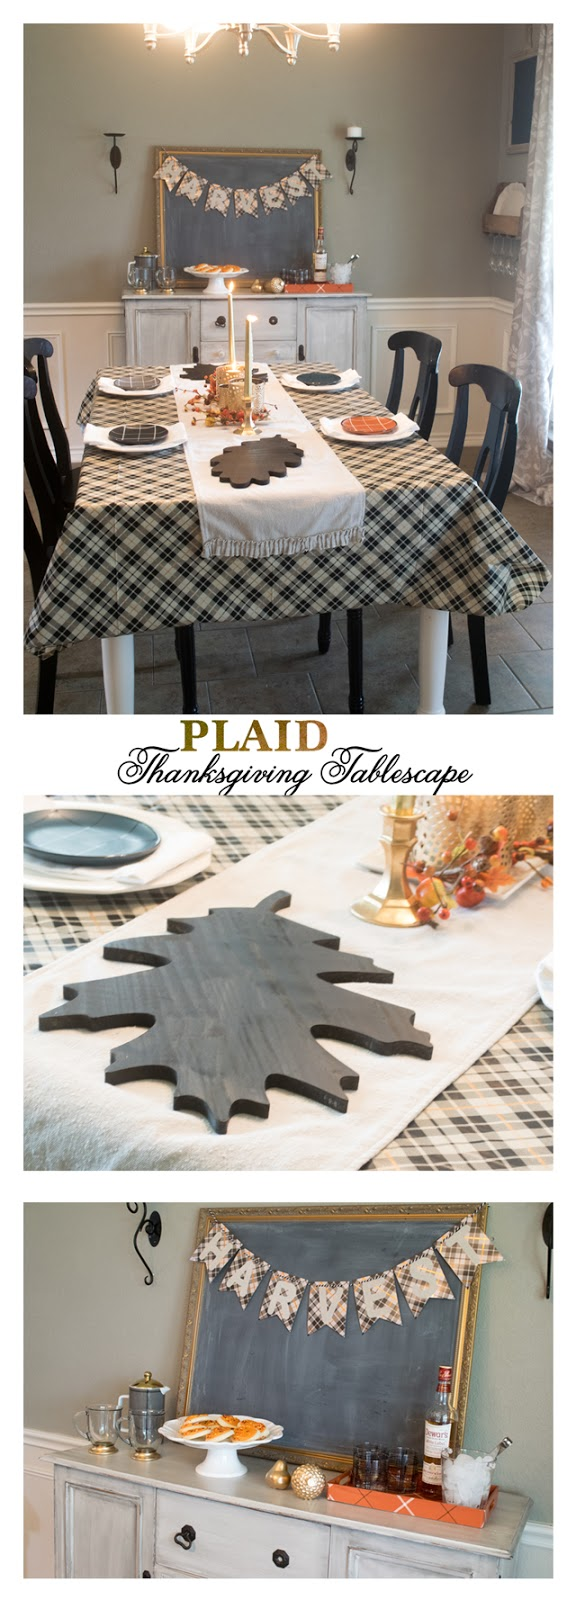 This fun Thanksgiving tablescape, buffet and dining room decor utilizes the many plaid items available at Target this fall.